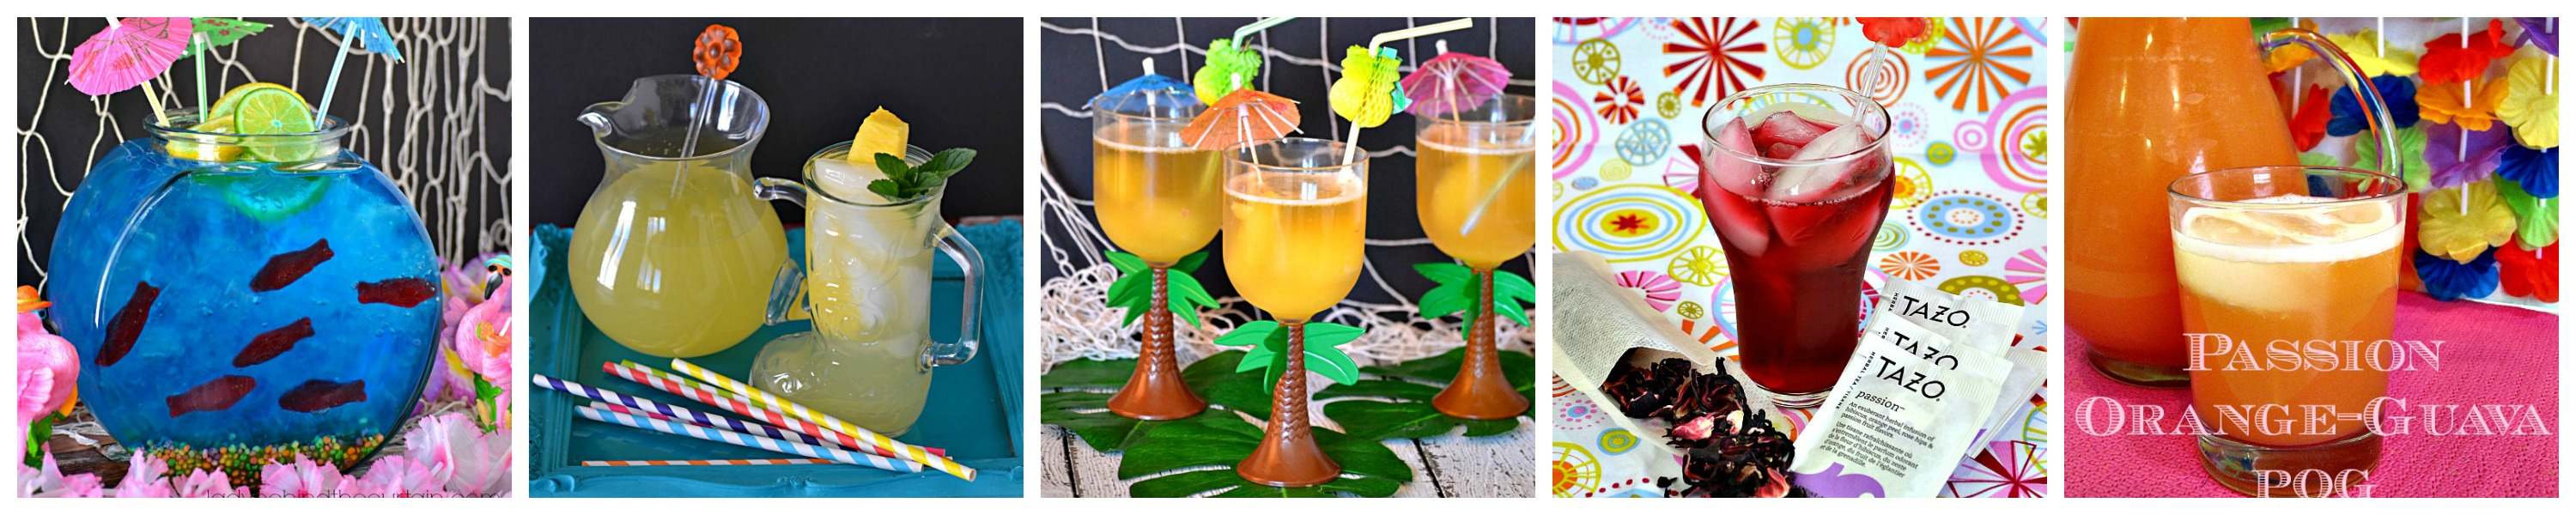 39 Ideas for the Perfect Luau, Beach and Pool Parties - Lady Behind The Curtain